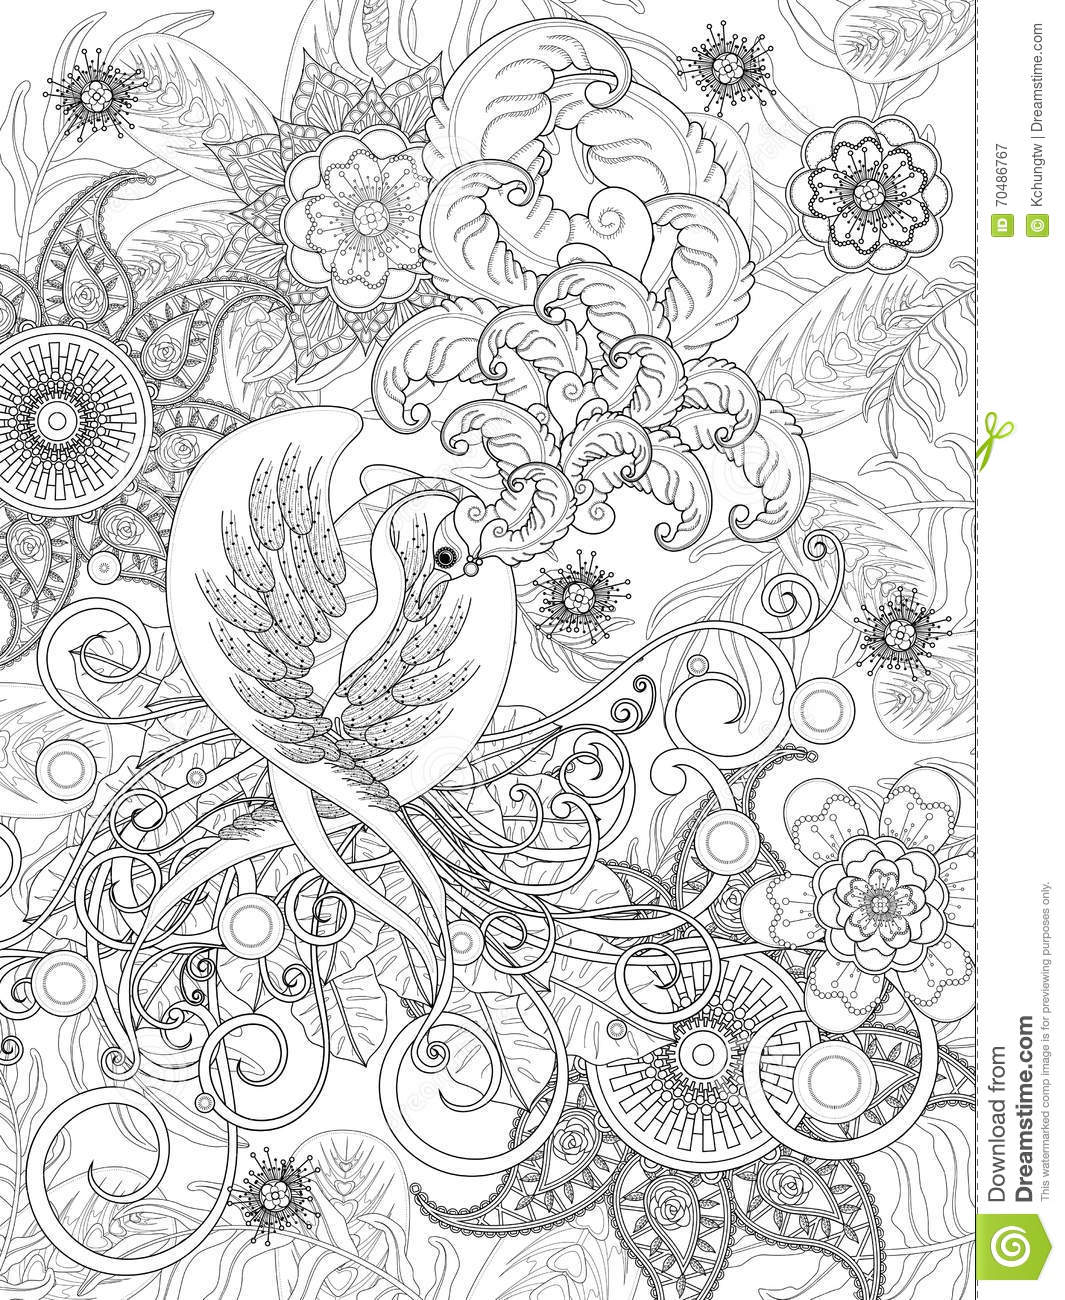 Bird Coloring Page Stock Vector Image 70486767